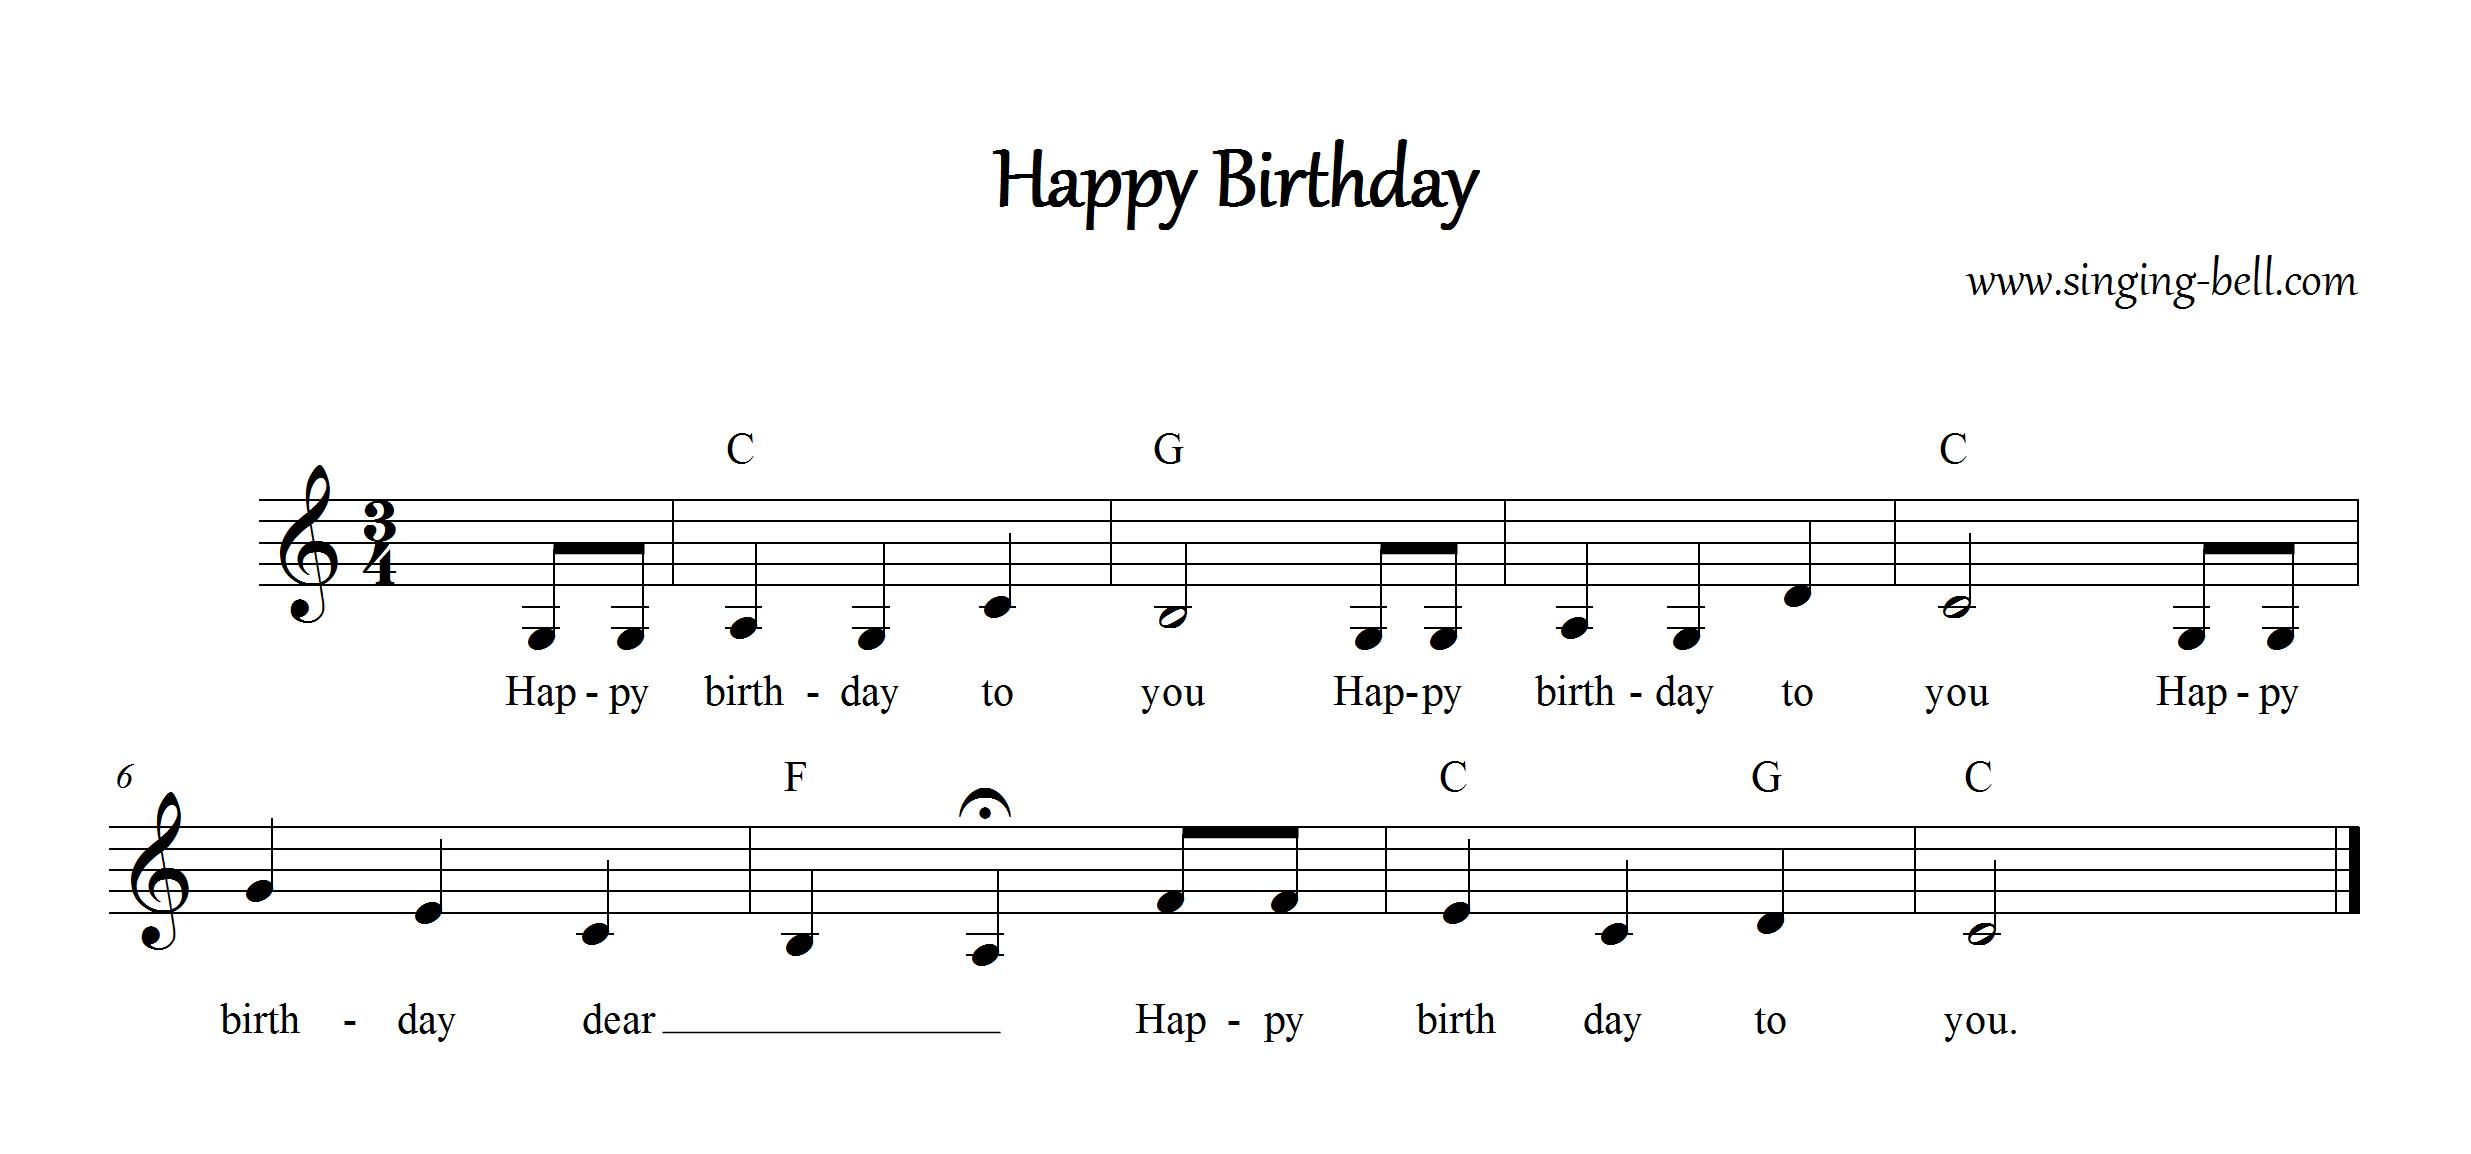 Happy Birthday to You | Free Karaoke mp3 Download